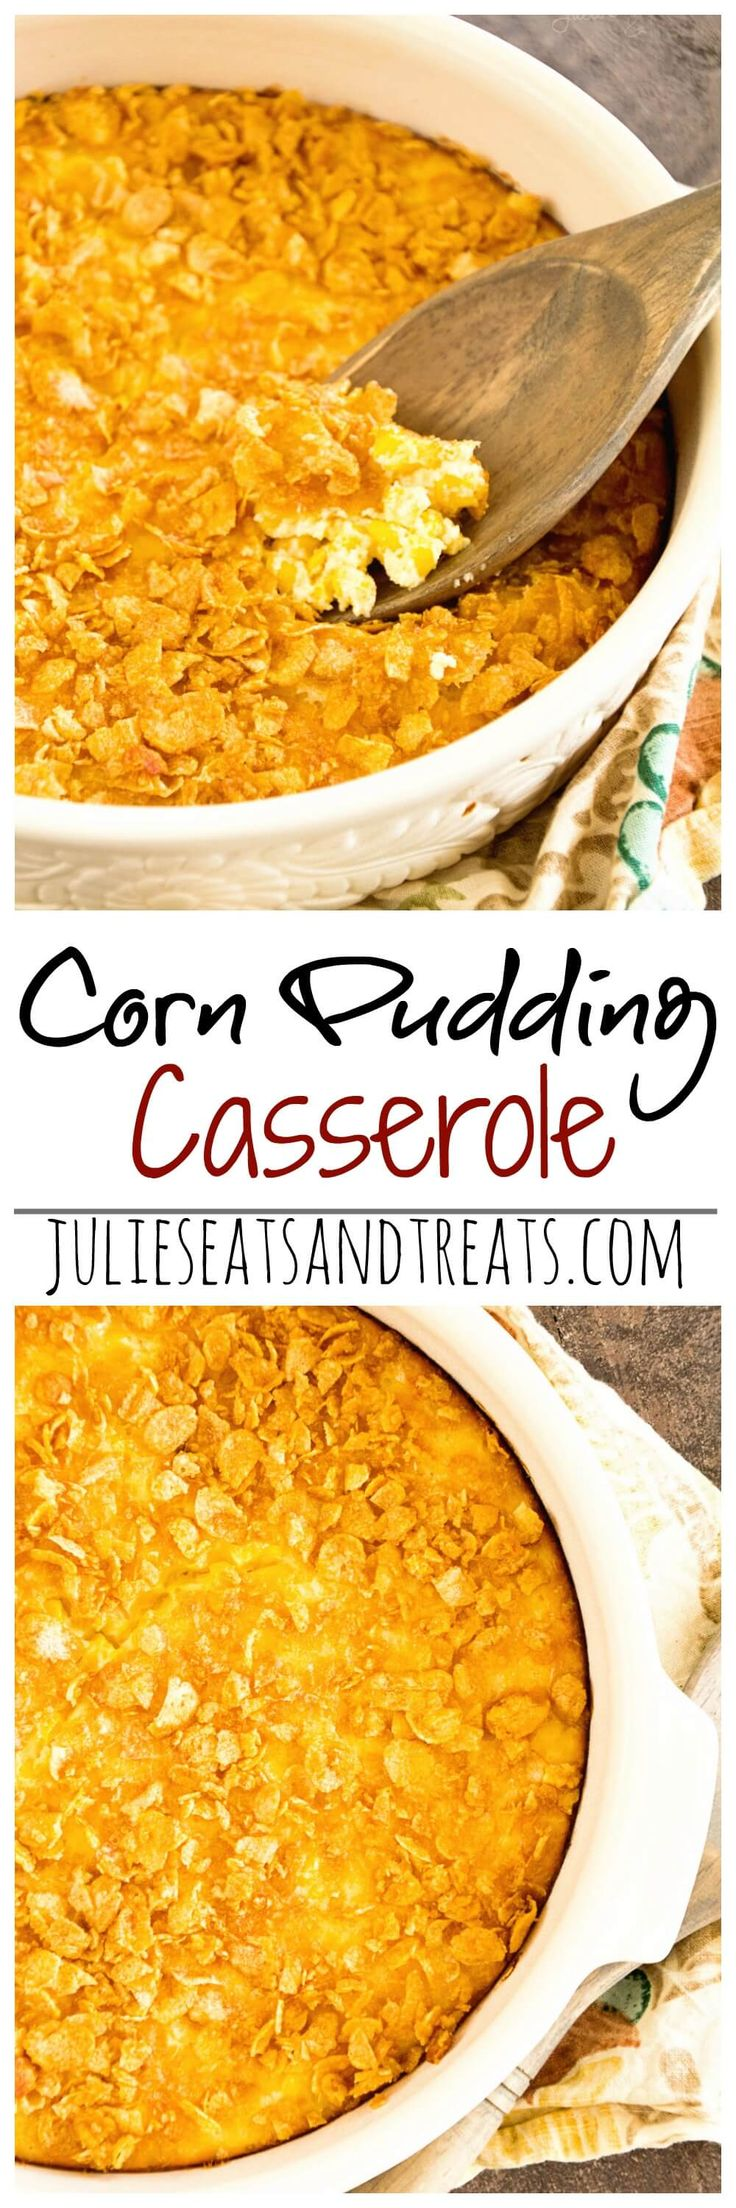 Corn Pudding Casserole Recipe ~ Delicious Side Dish Perfect for Entertaining Yet Quick Enough for Dinner! ~ http://www.julieseatsandtreats.com